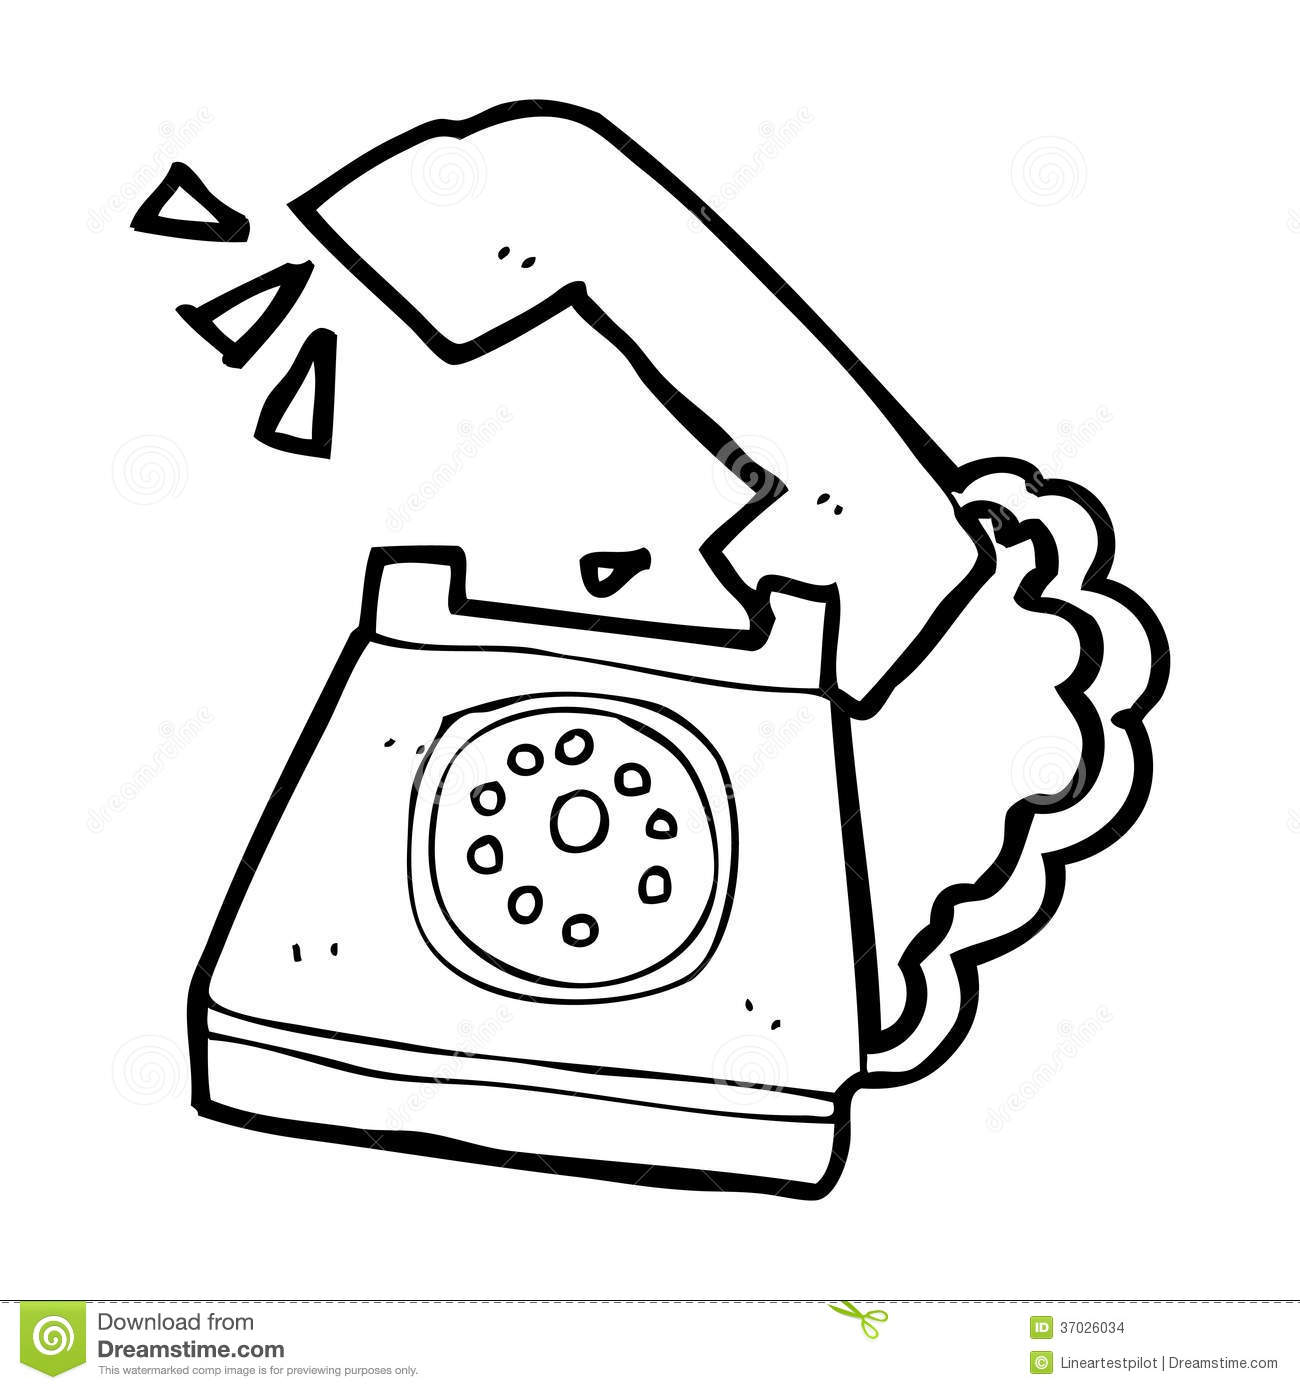 Telephone clipart black and white #11